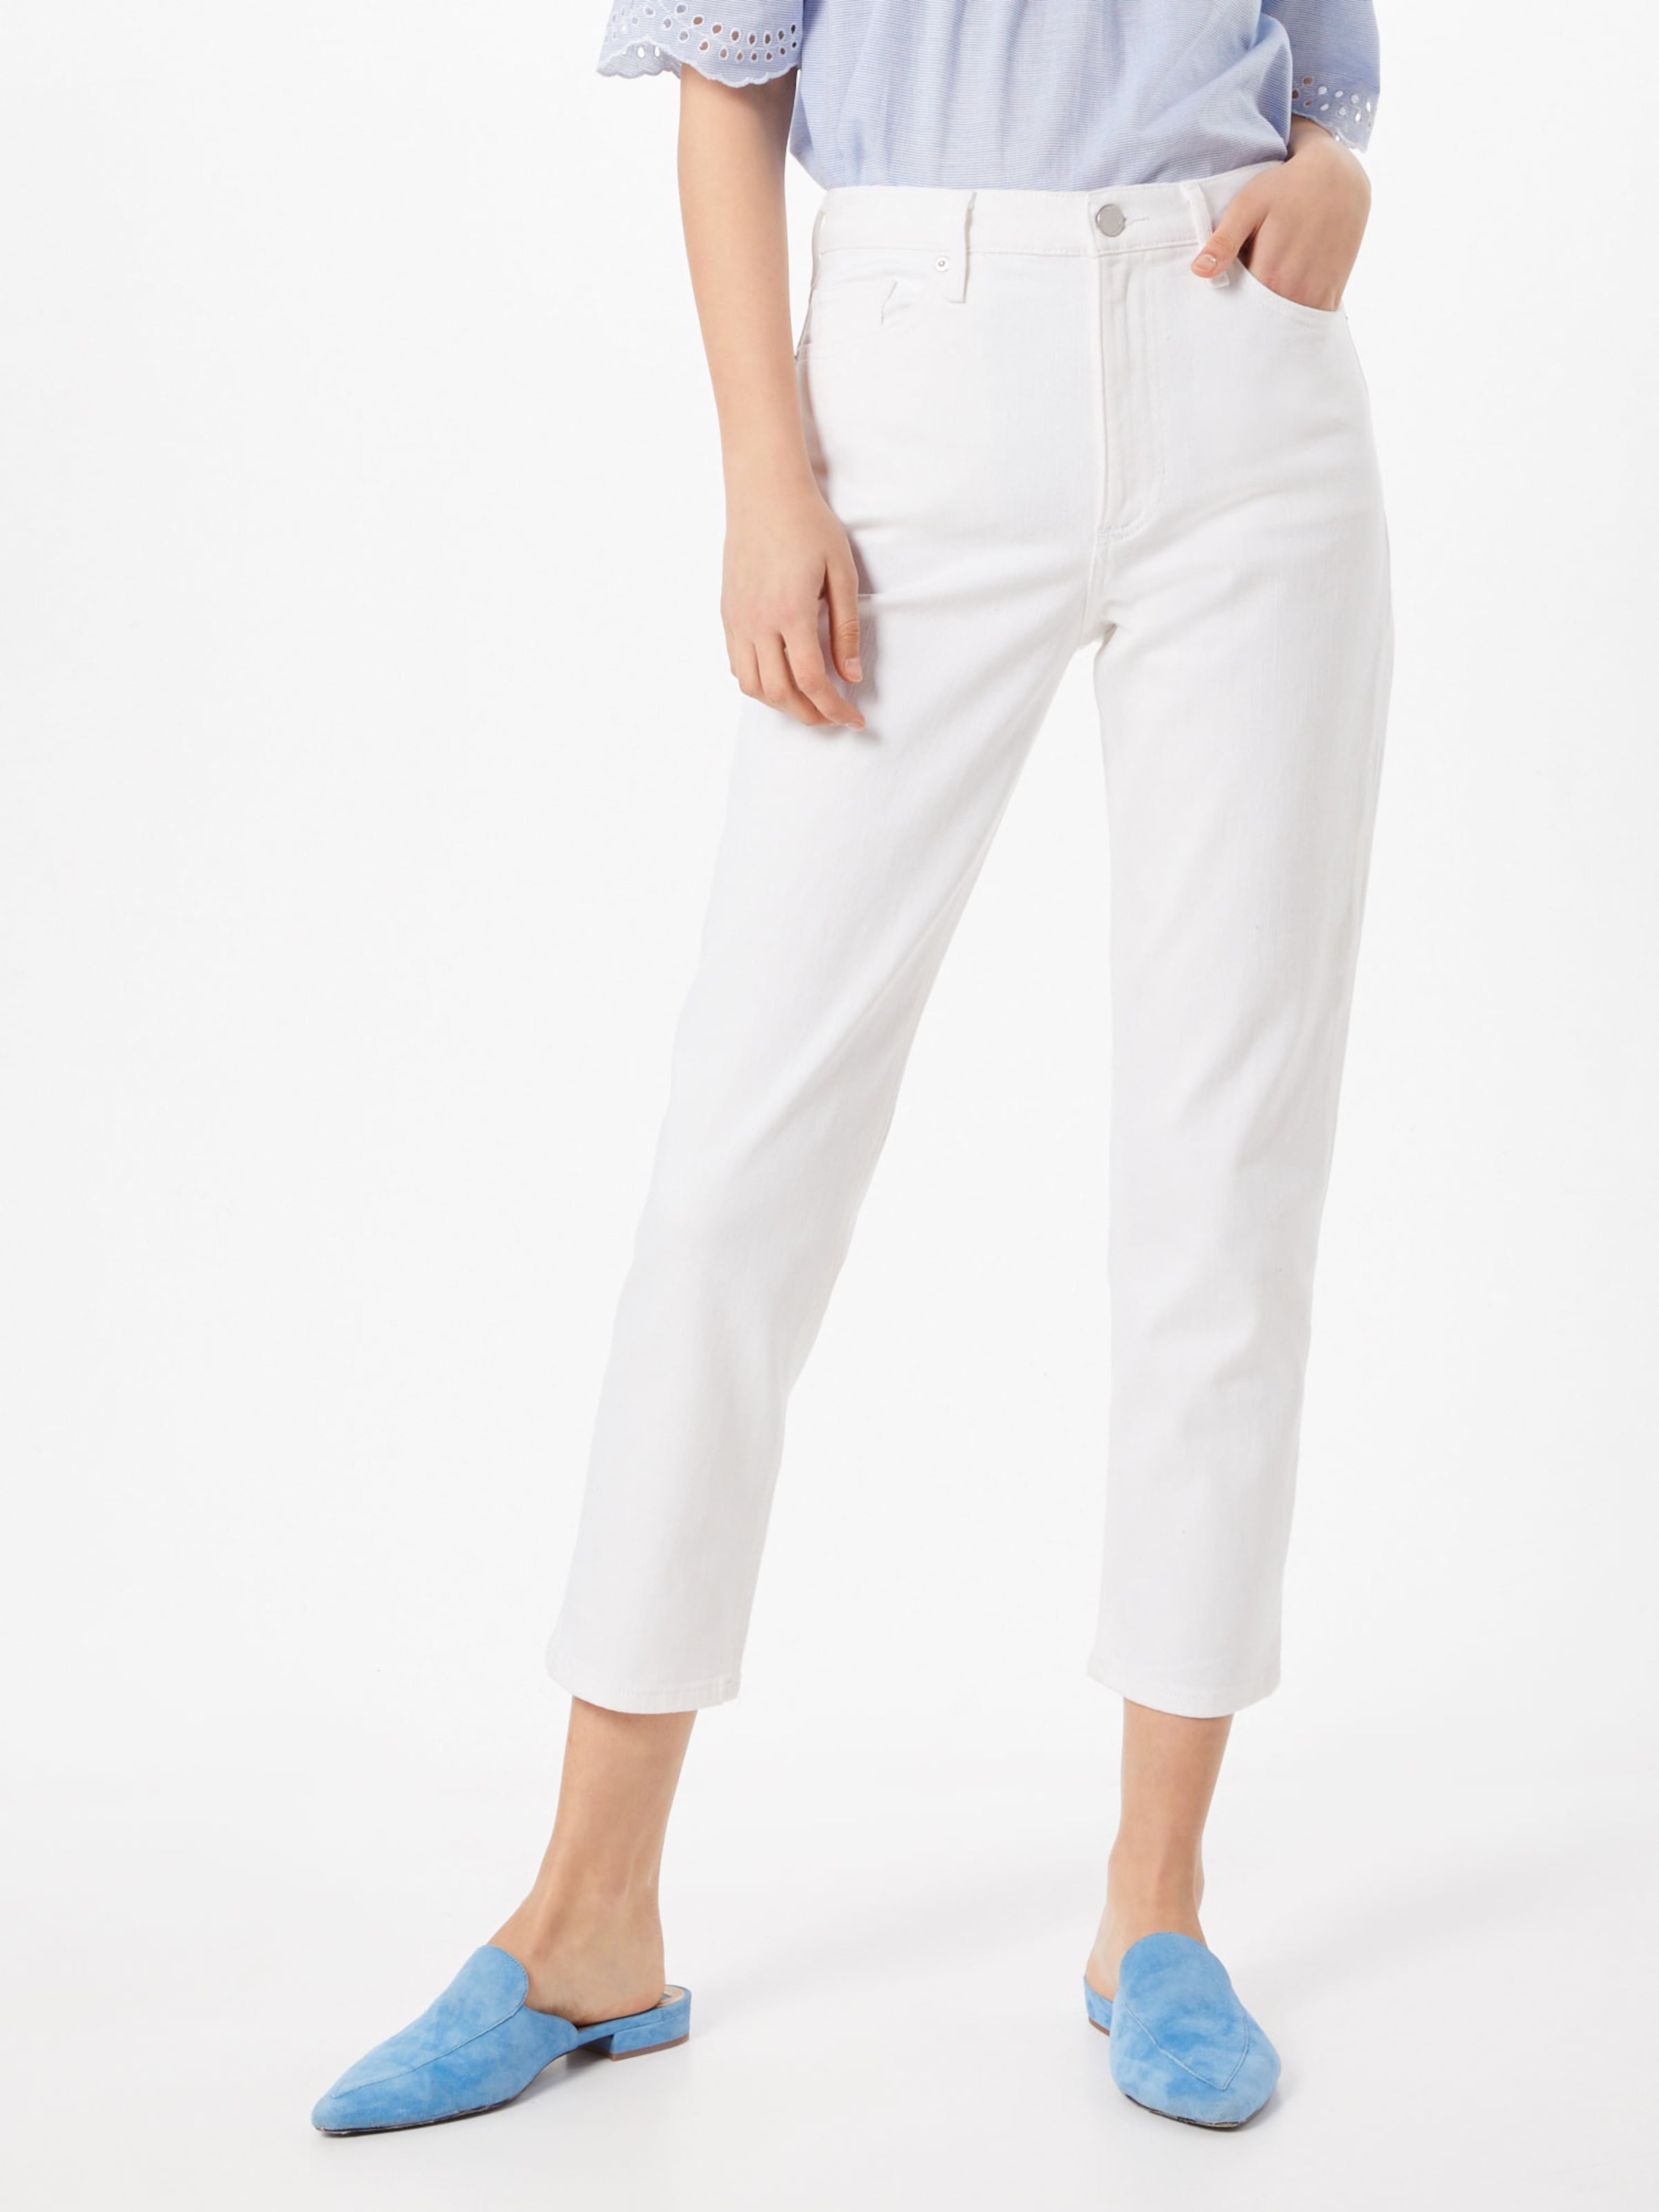 Straight Front Seams' Republic W 'highrise White Banana Weiß DamenJeans In ikXTPZOwu